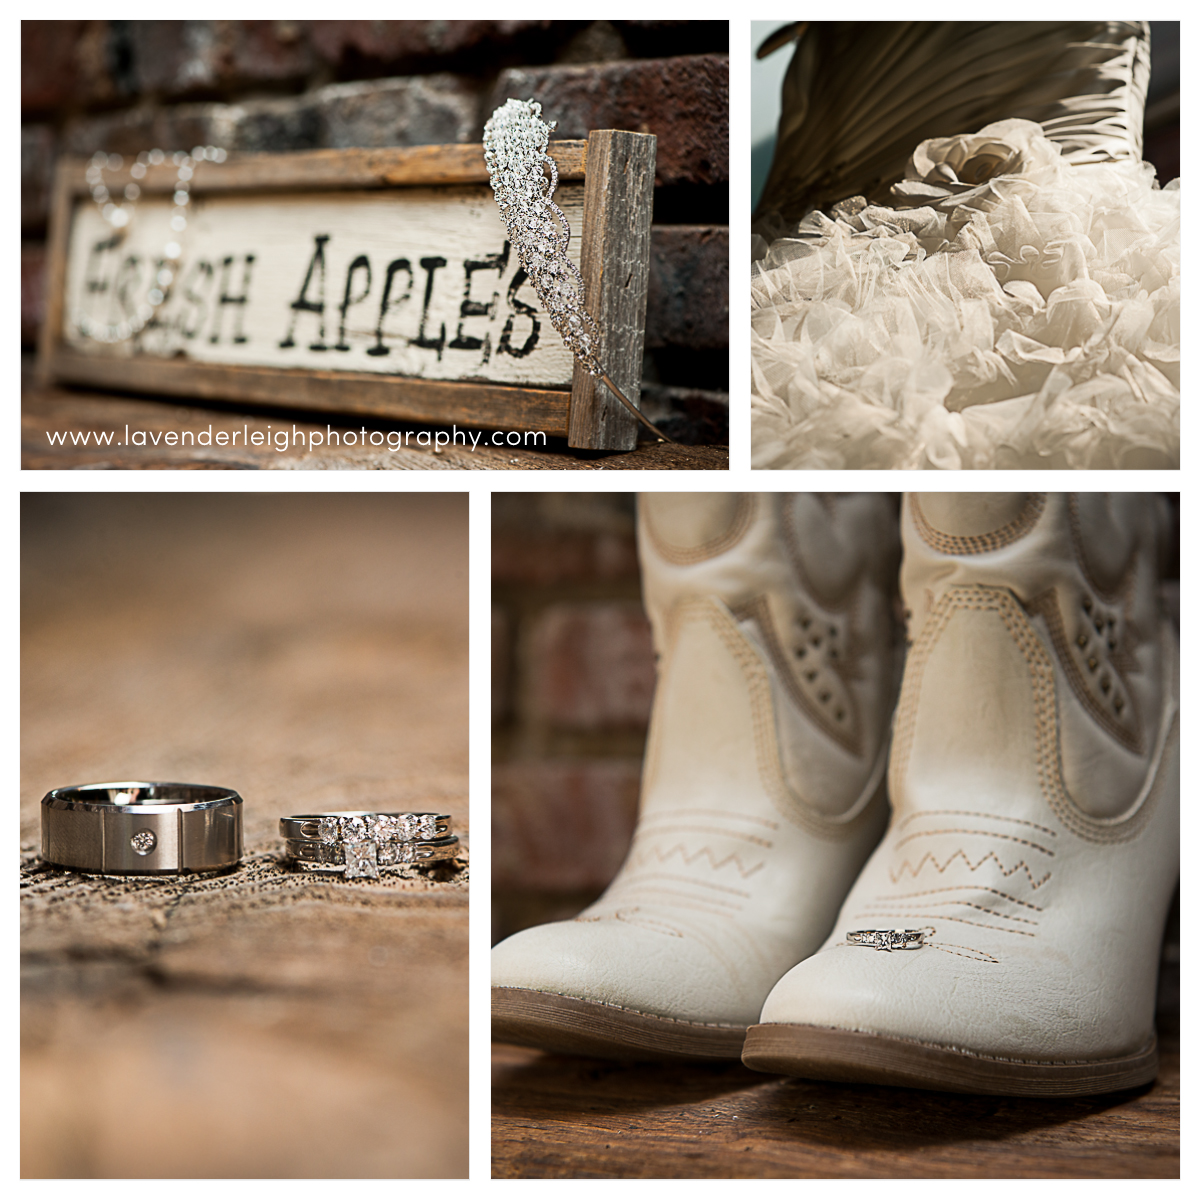 Foggy Mountain Lodge Wedding| Getting Ready Wedding Images | Cowgirl Boots |Pittsburgh Wedding Photographer | Pittsburgh Wedding Photographers | Lavender Leigh Photography | Blog